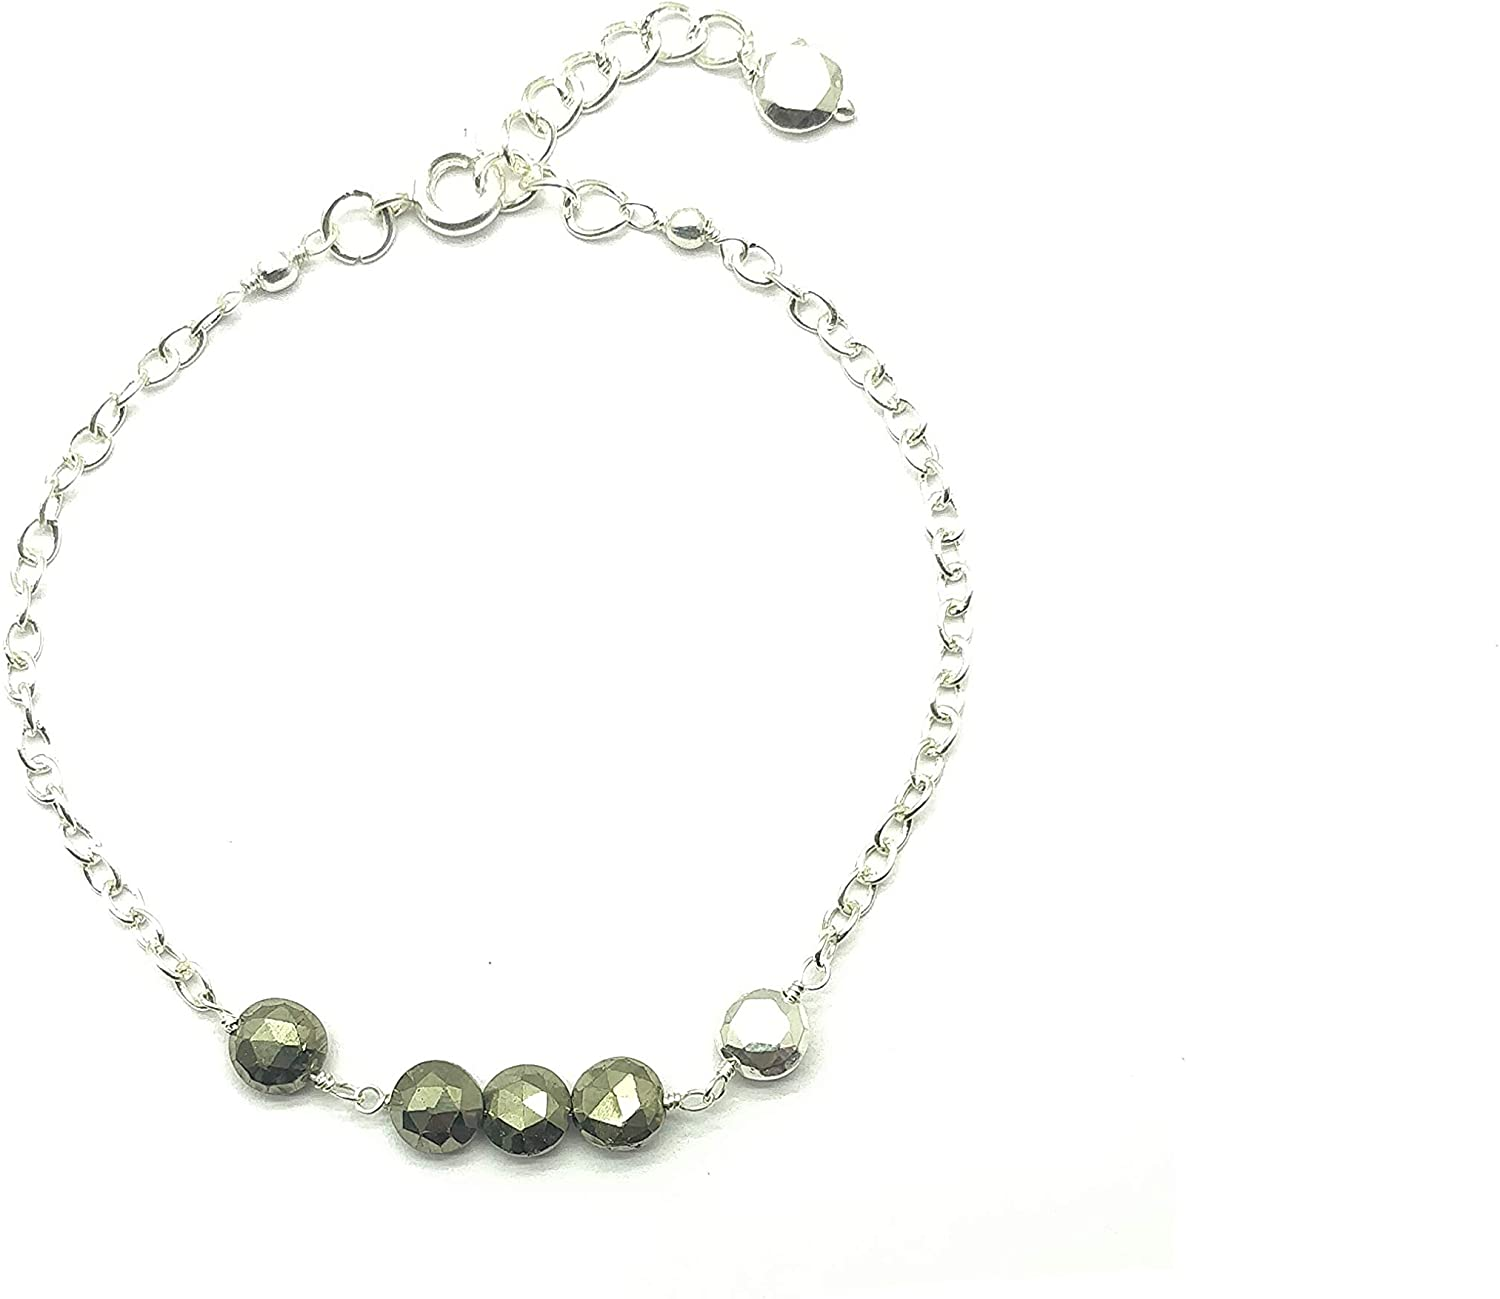 Natural Pyrite Silver plated, 5x5mm Coin Faceted 7 inch Adjustable bracelet beaded bar bracelet jewelry for GF & Wife, Mother gift